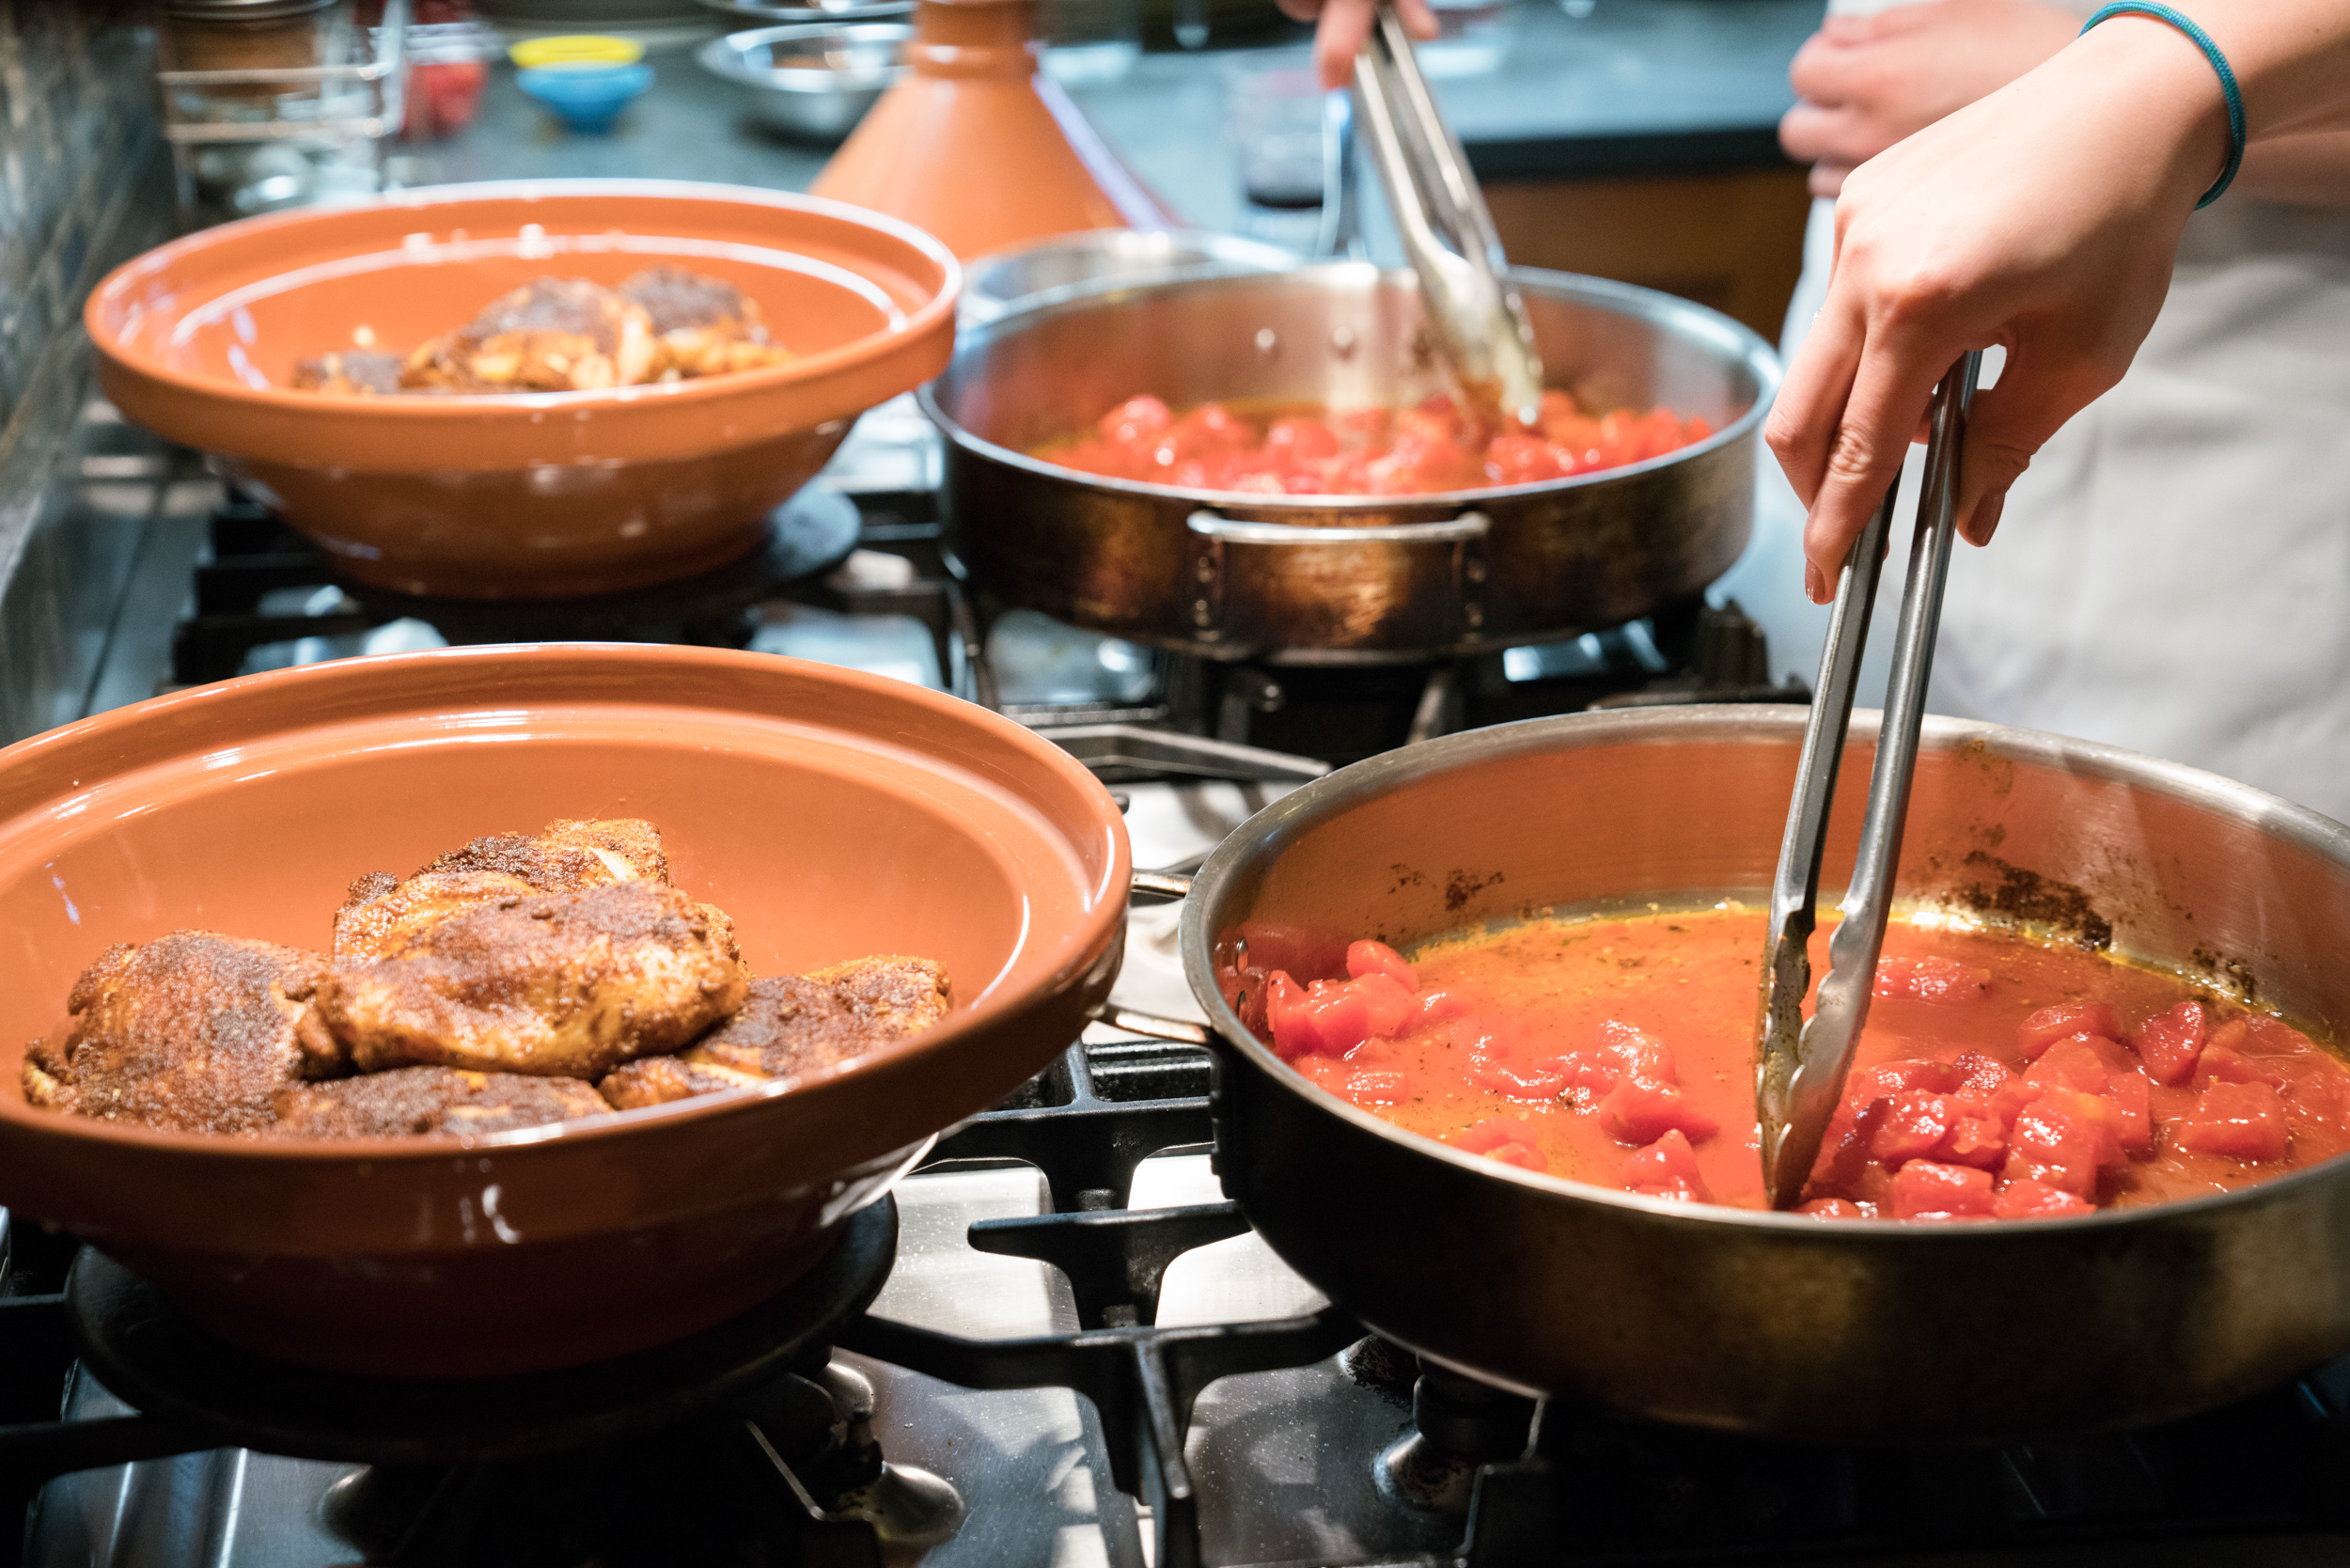 Cook-with-Chef-Traci-Team-Building-Cooking-tomatoes-for-tagine.jpg